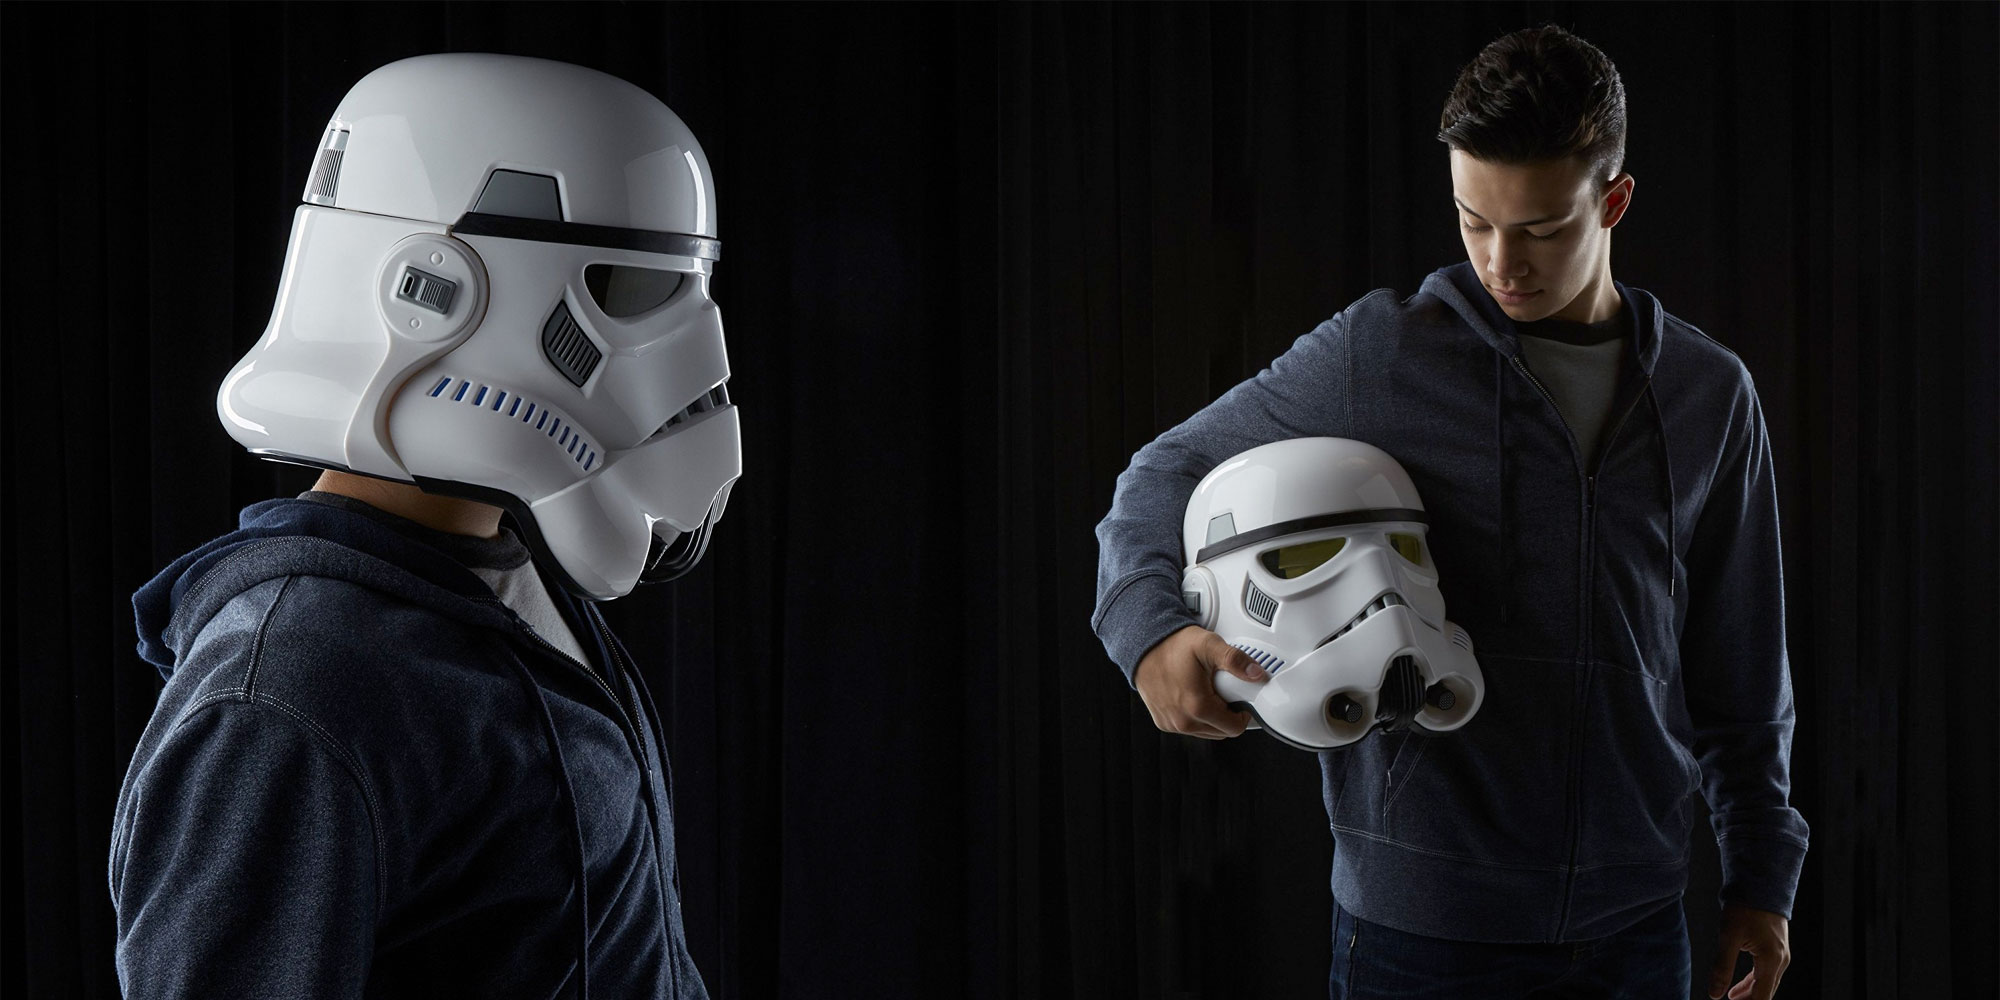 Enlist in the Imperial Army w/ this replica Star Wars Stormtrooper Helmet at $64.50 (20% off)